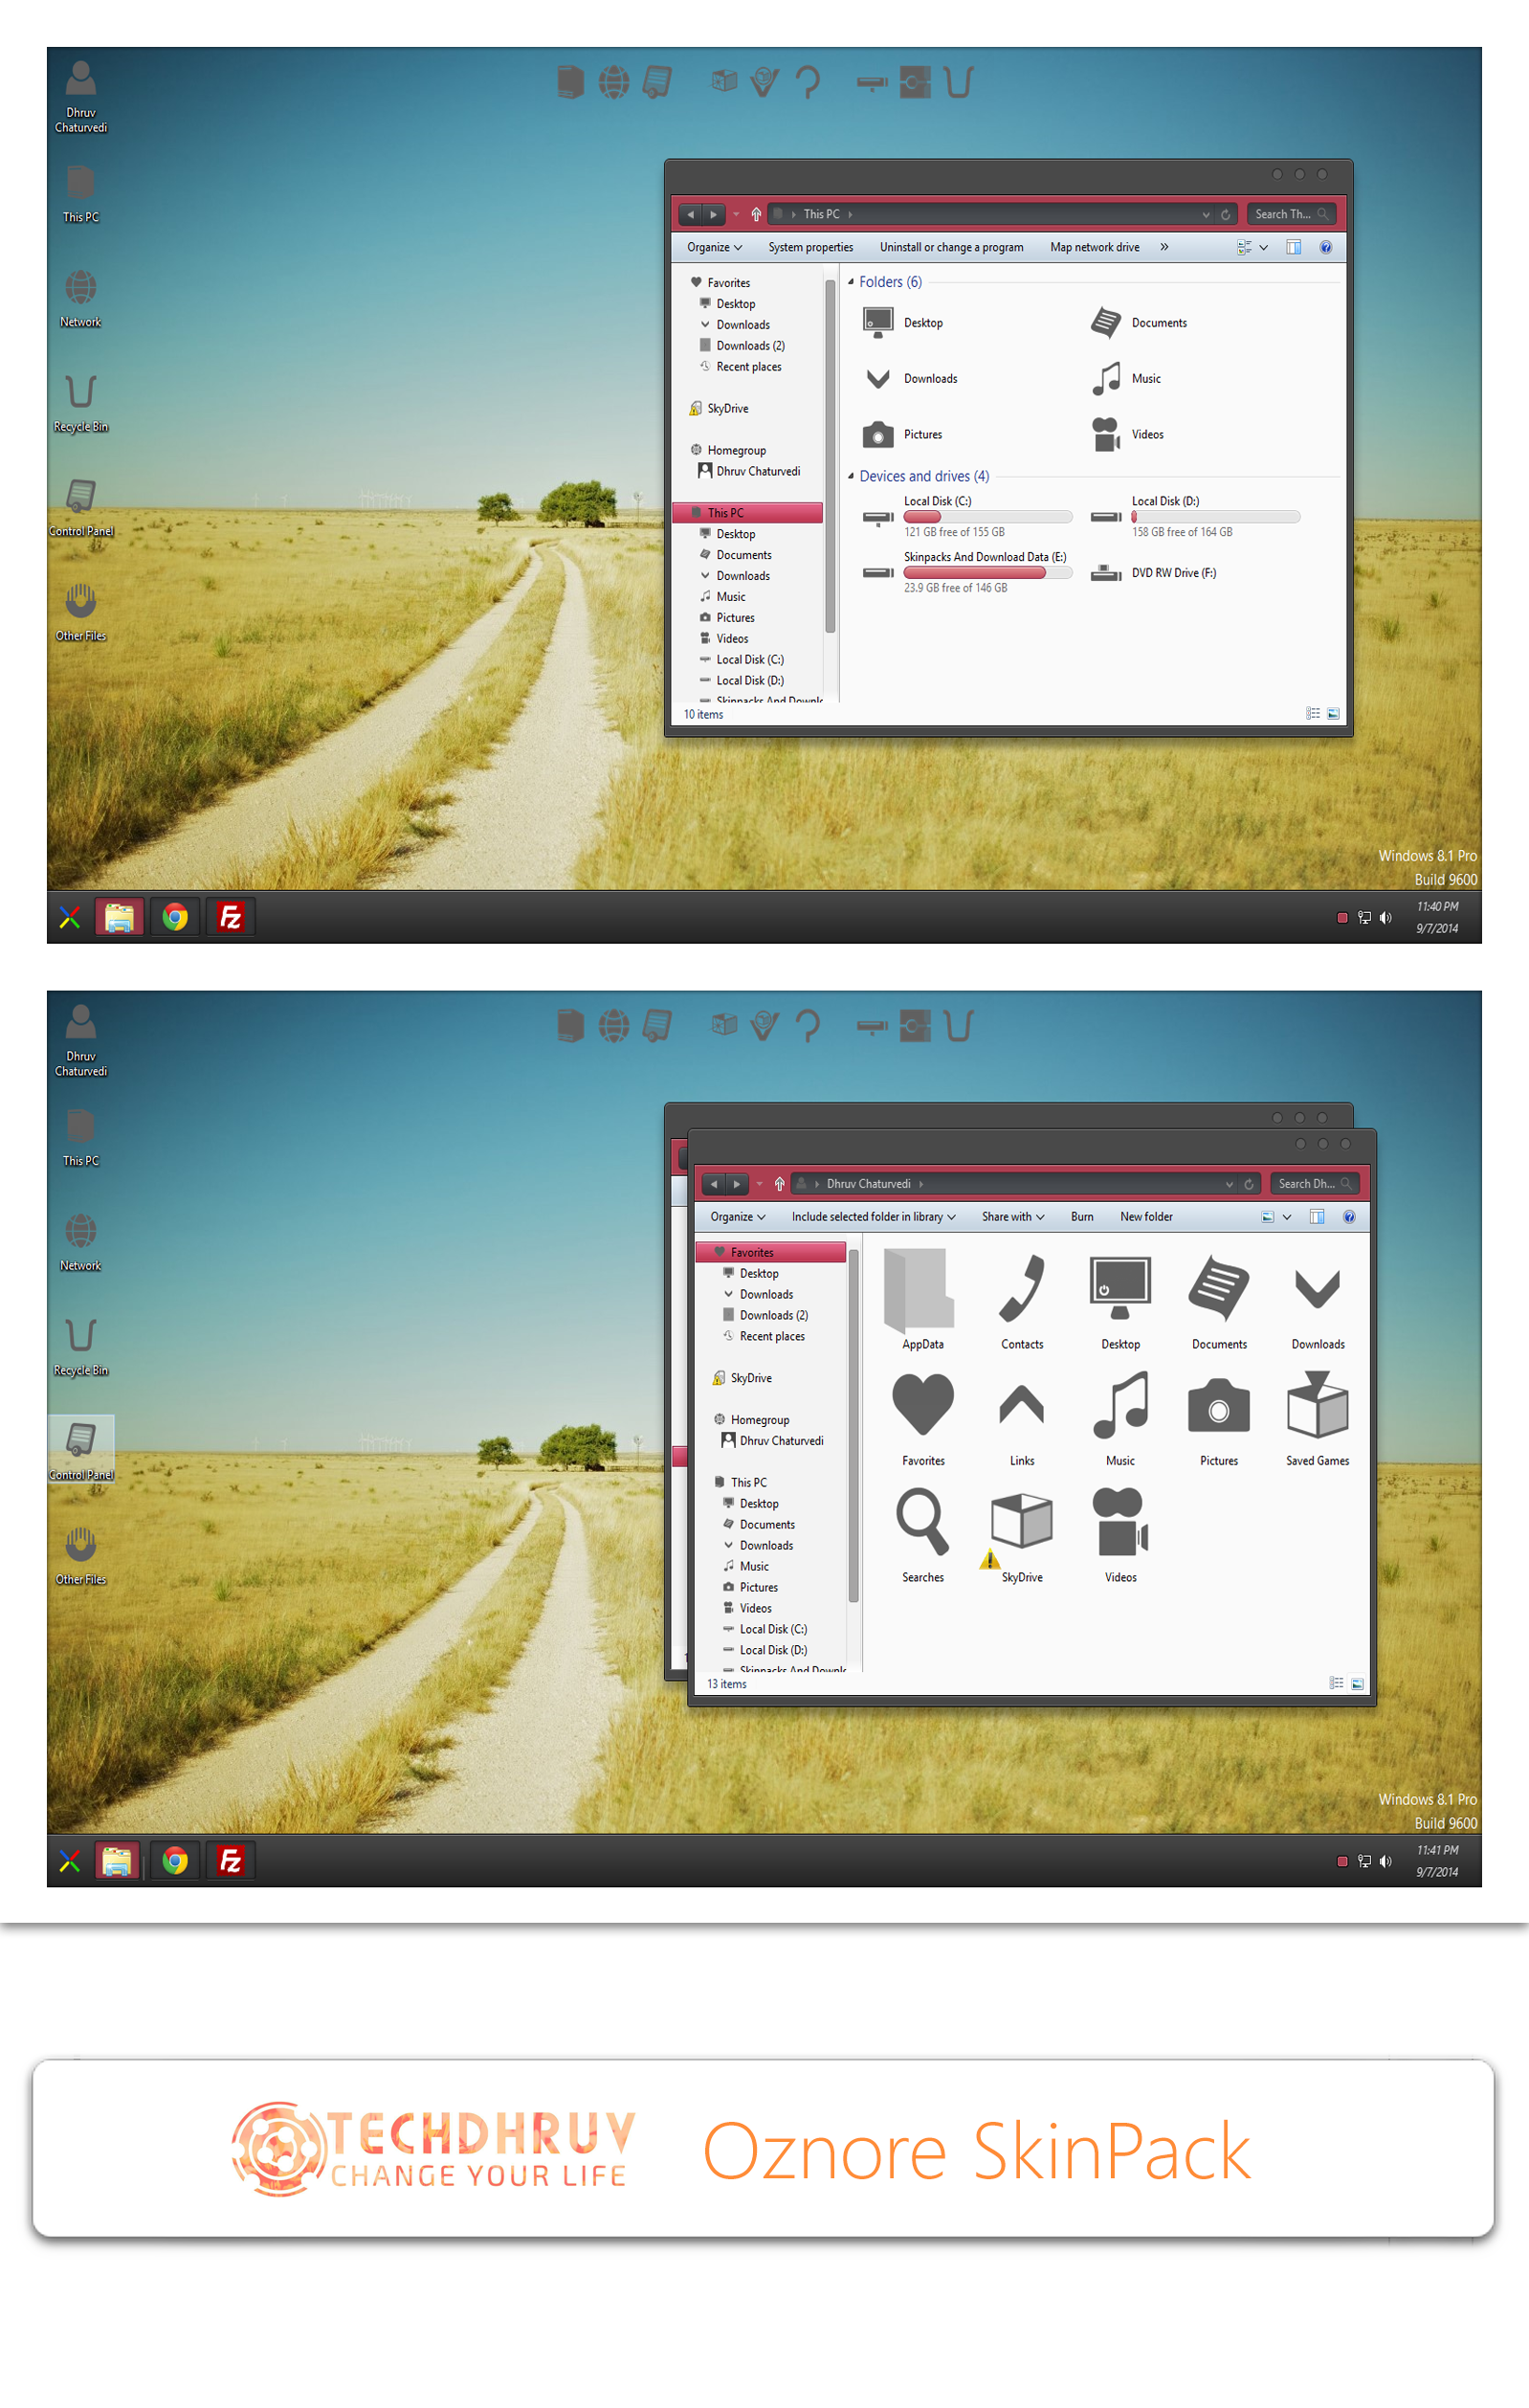 Oznore Skinpack For Win7/8/8.1 by TheDhruv